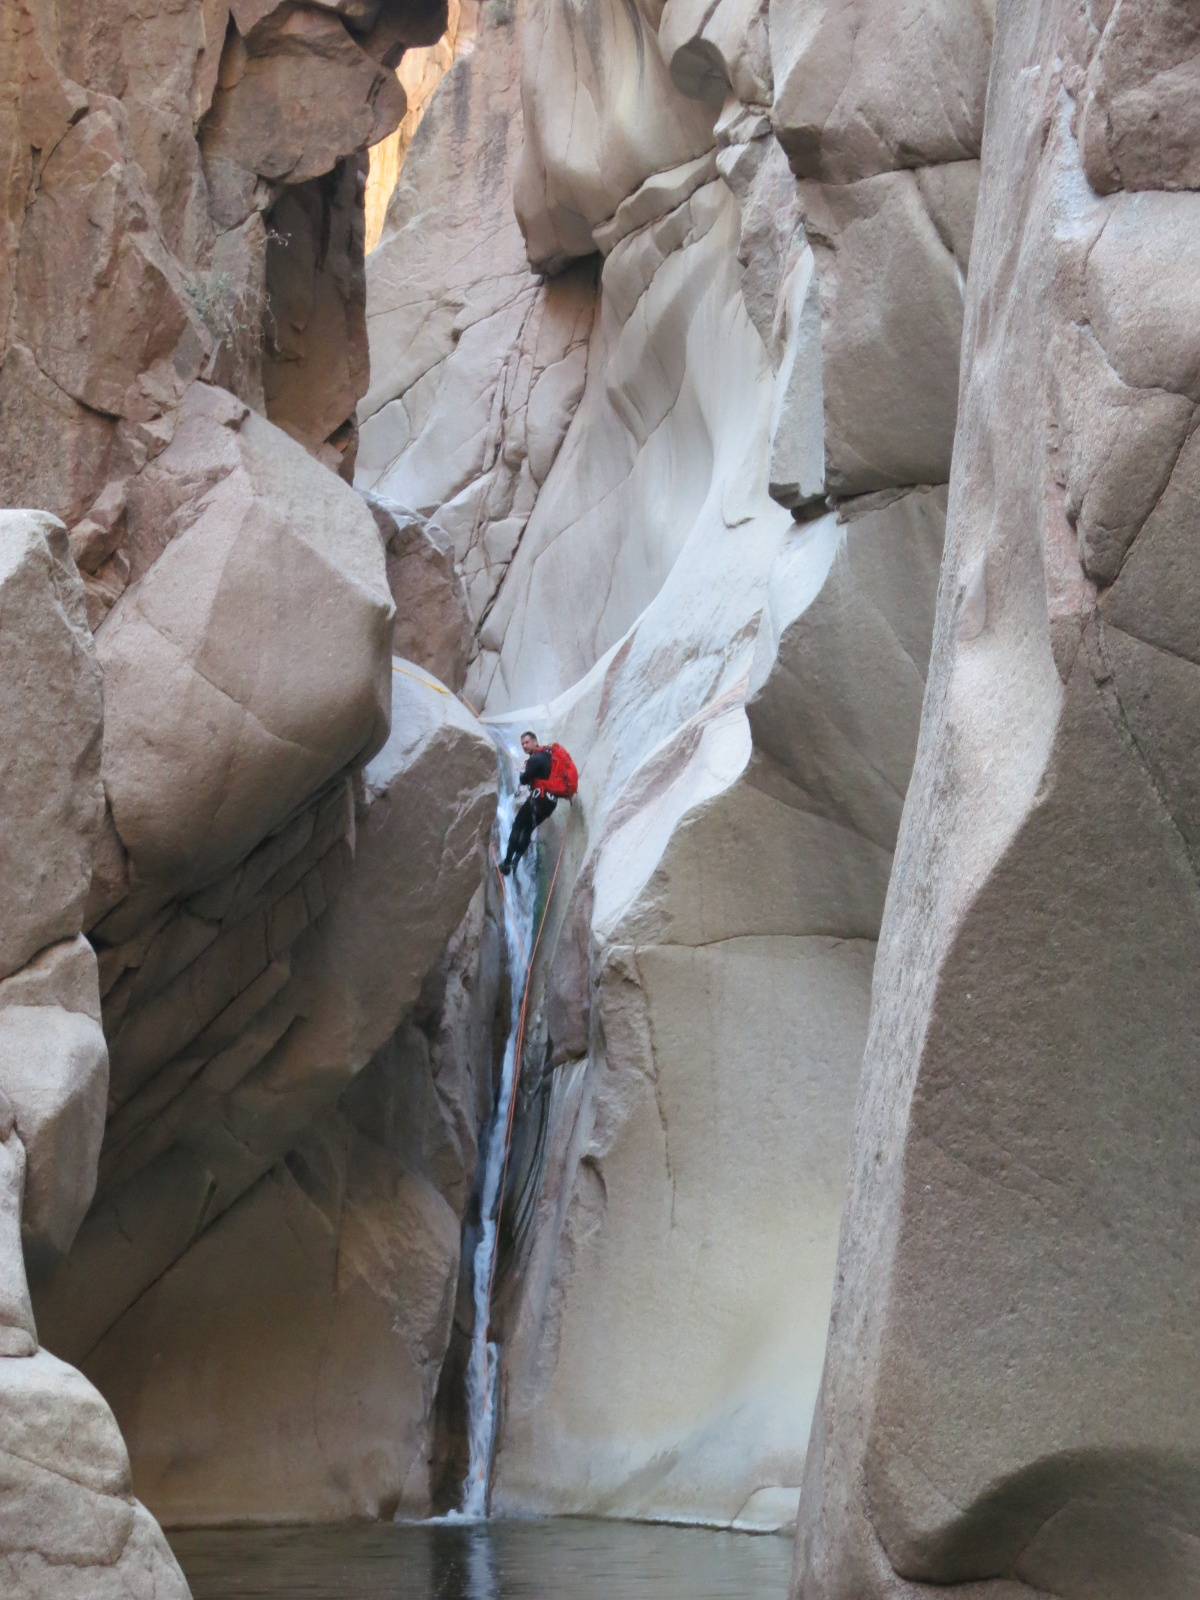 Salome Jug Arizona Canyoneering